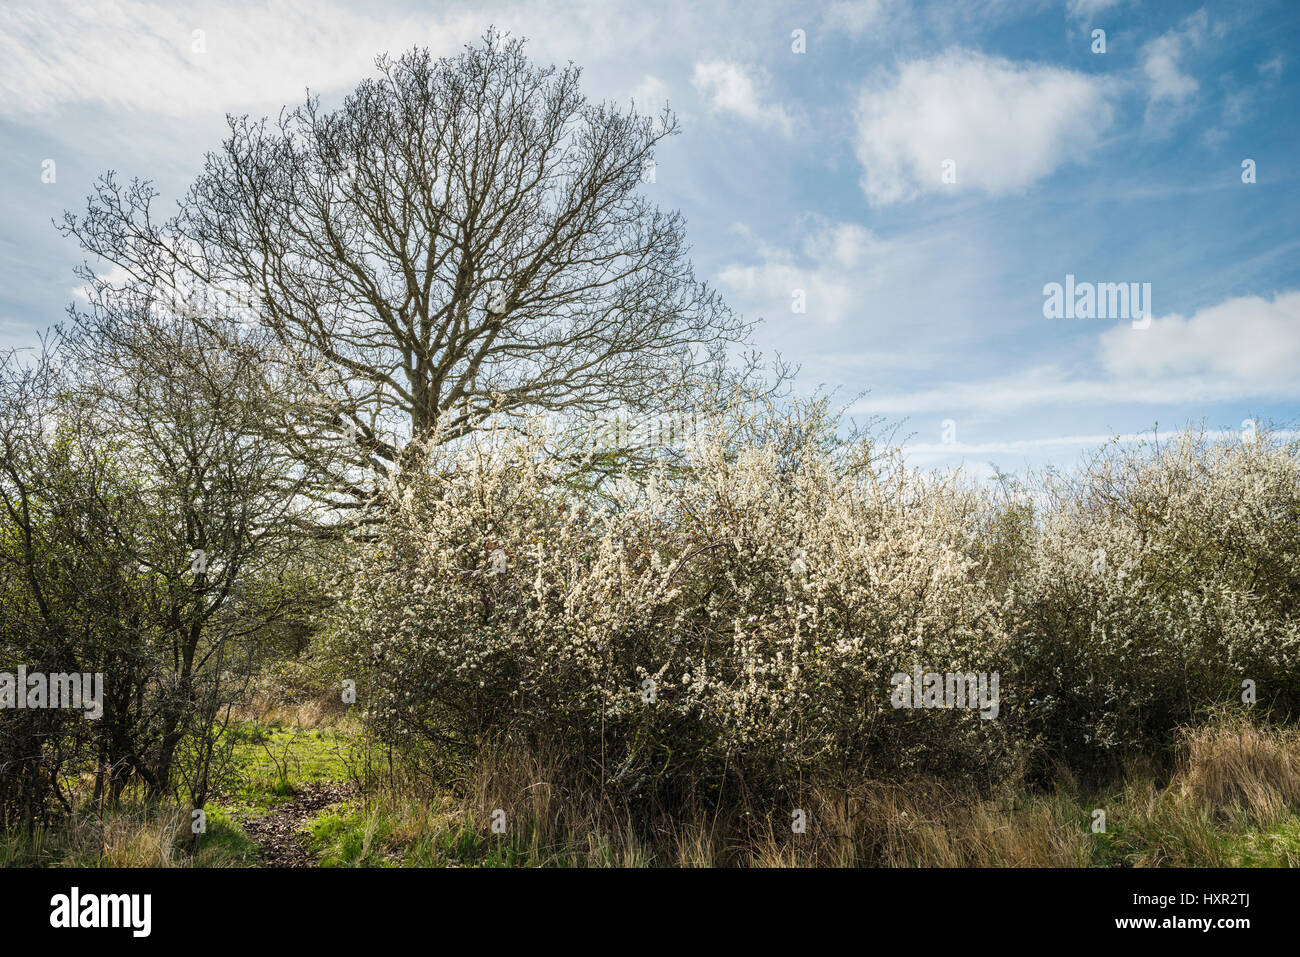 Castor Hanglands National Nature Reserve (NNR) and Site of Special Scientific Interest (SSSI), Cambridgeshire, in - Stock Image